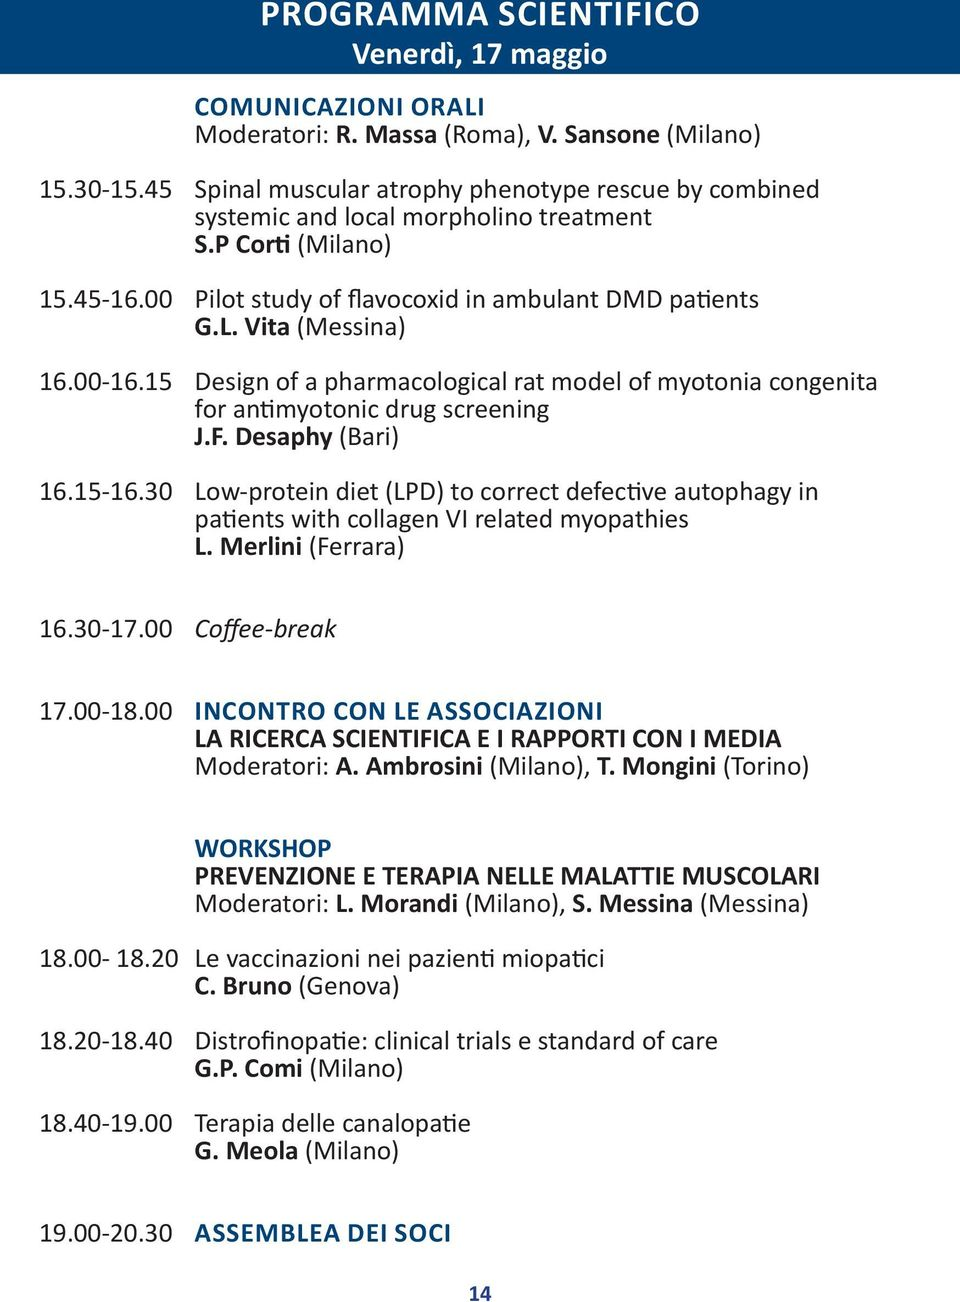 Vita (Messina) 16.00-16.15 Design of a pharmacological rat model of myotonia congenita for antimyotonic drug screening J.F. Desaphy (Bari) 16.15-16.